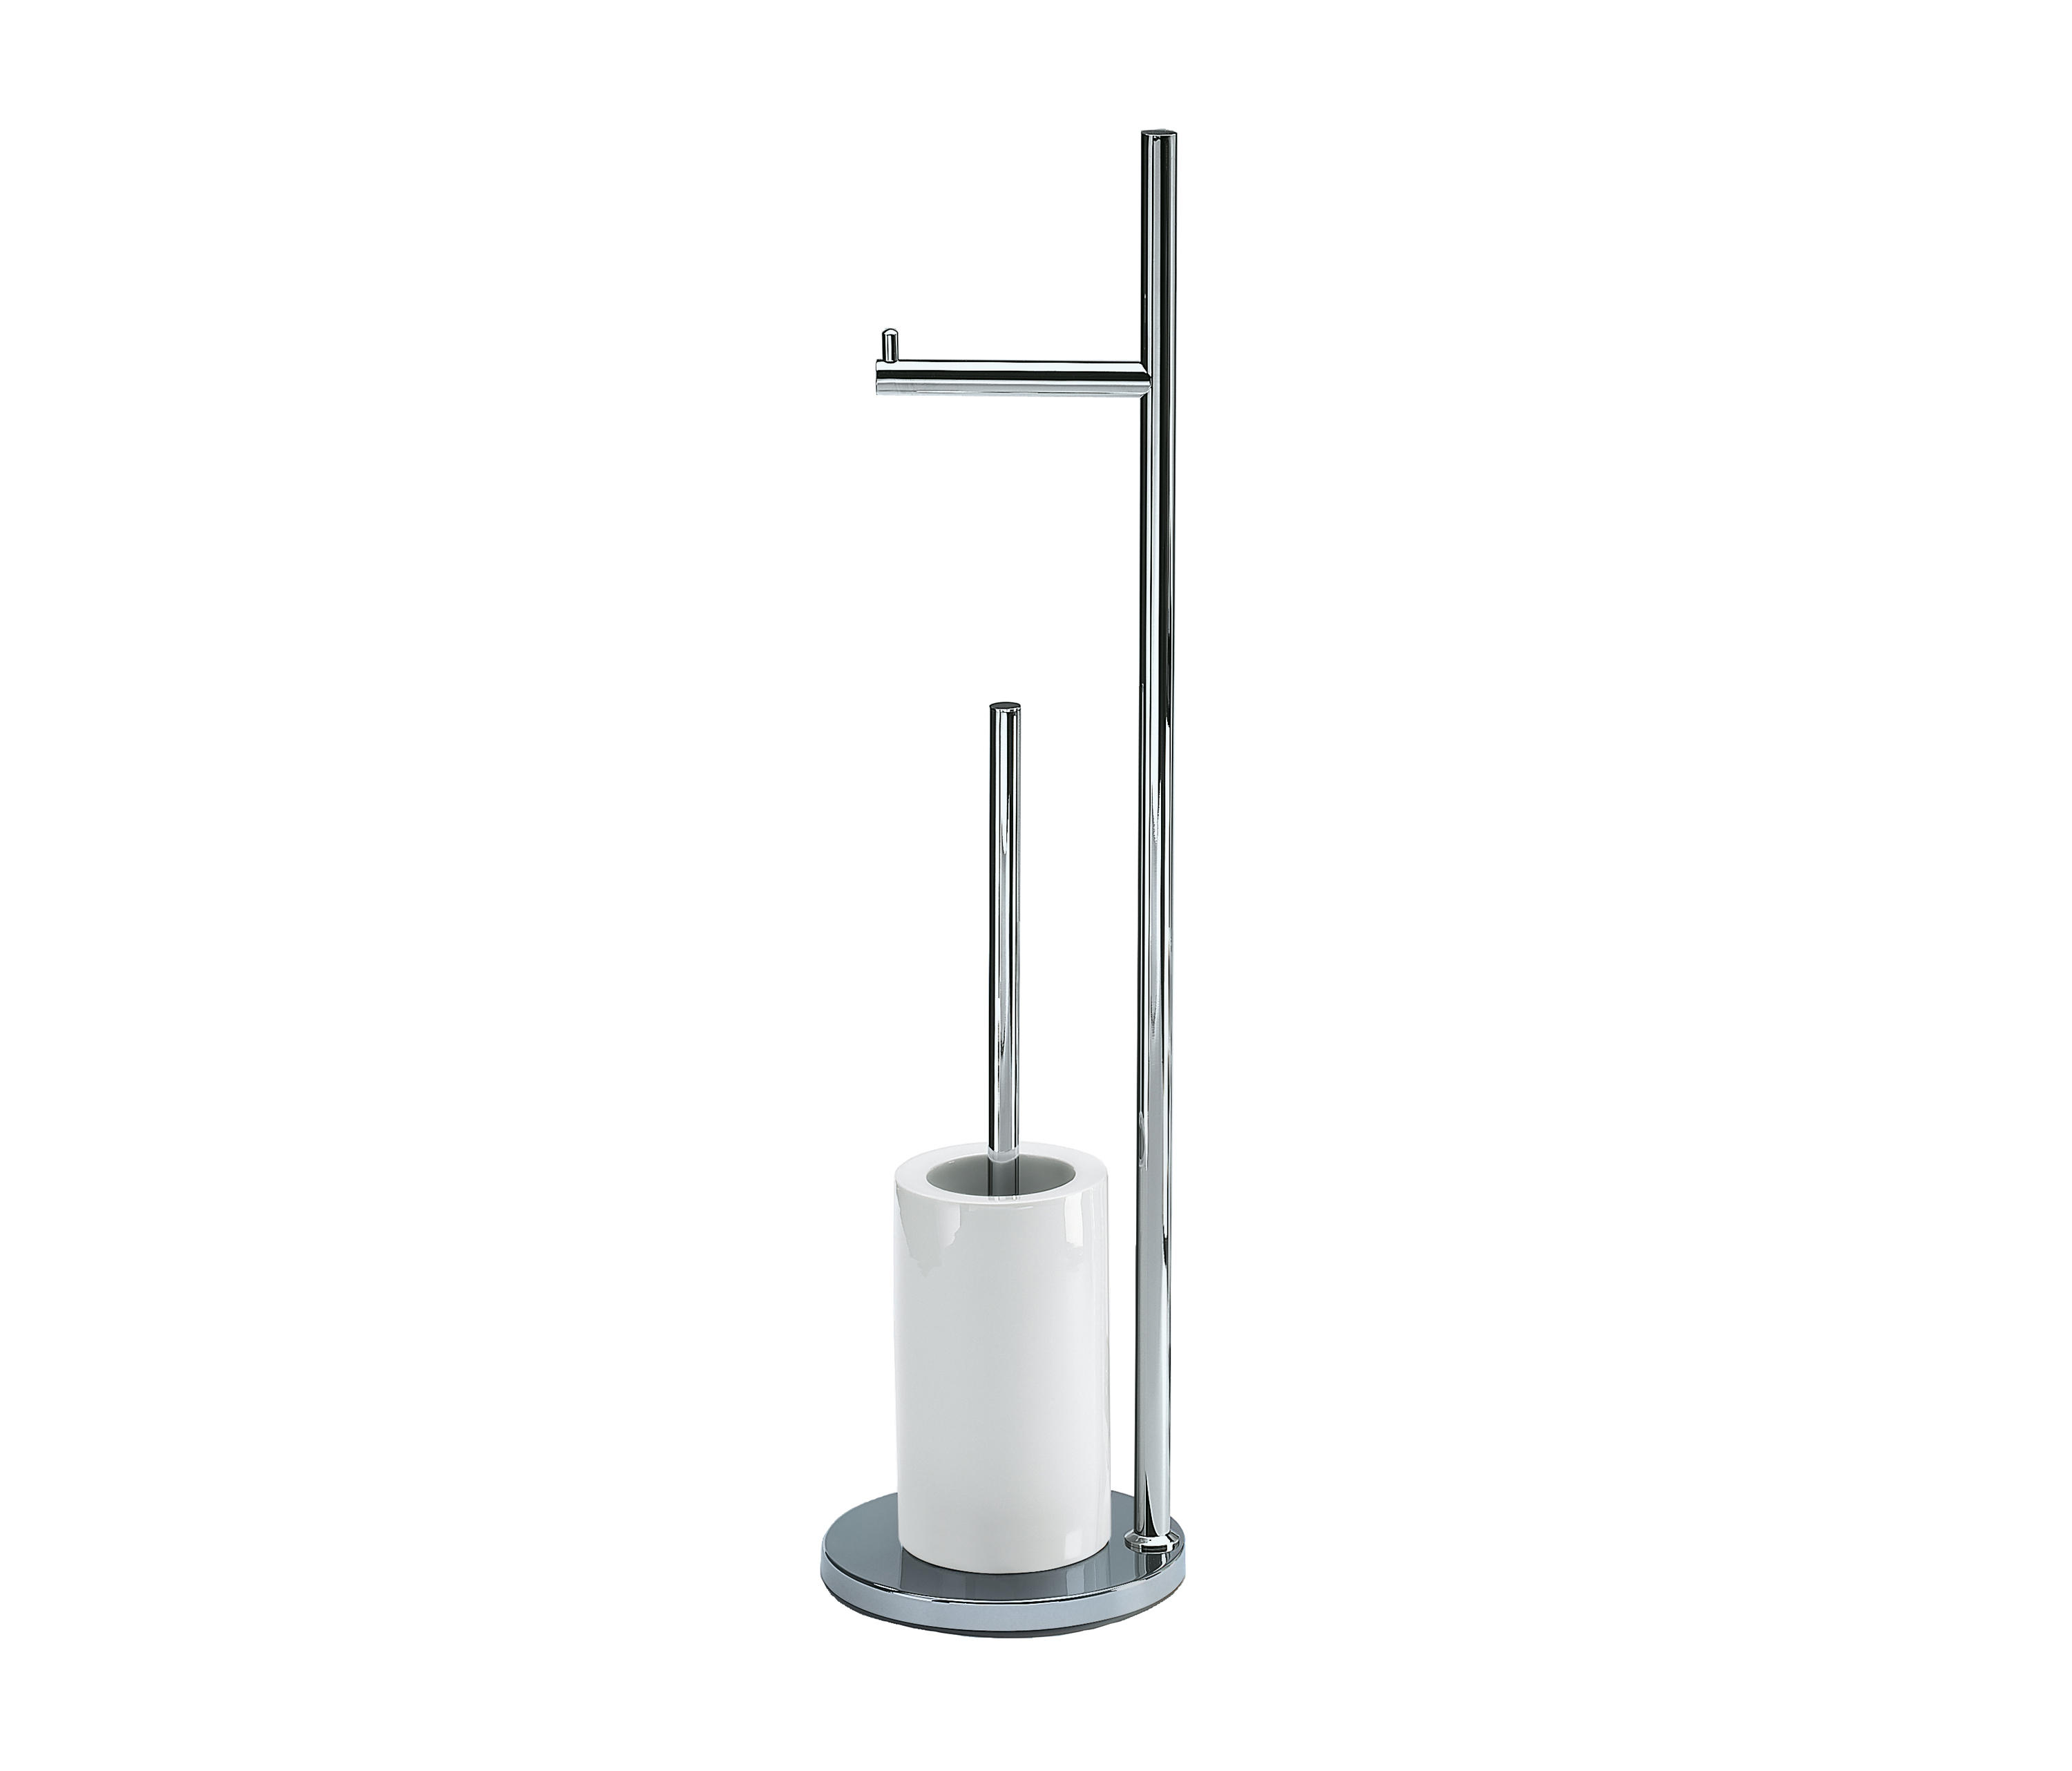 Decor Walther Dw 6700 Toilet Stands From Decor Walther Architonic